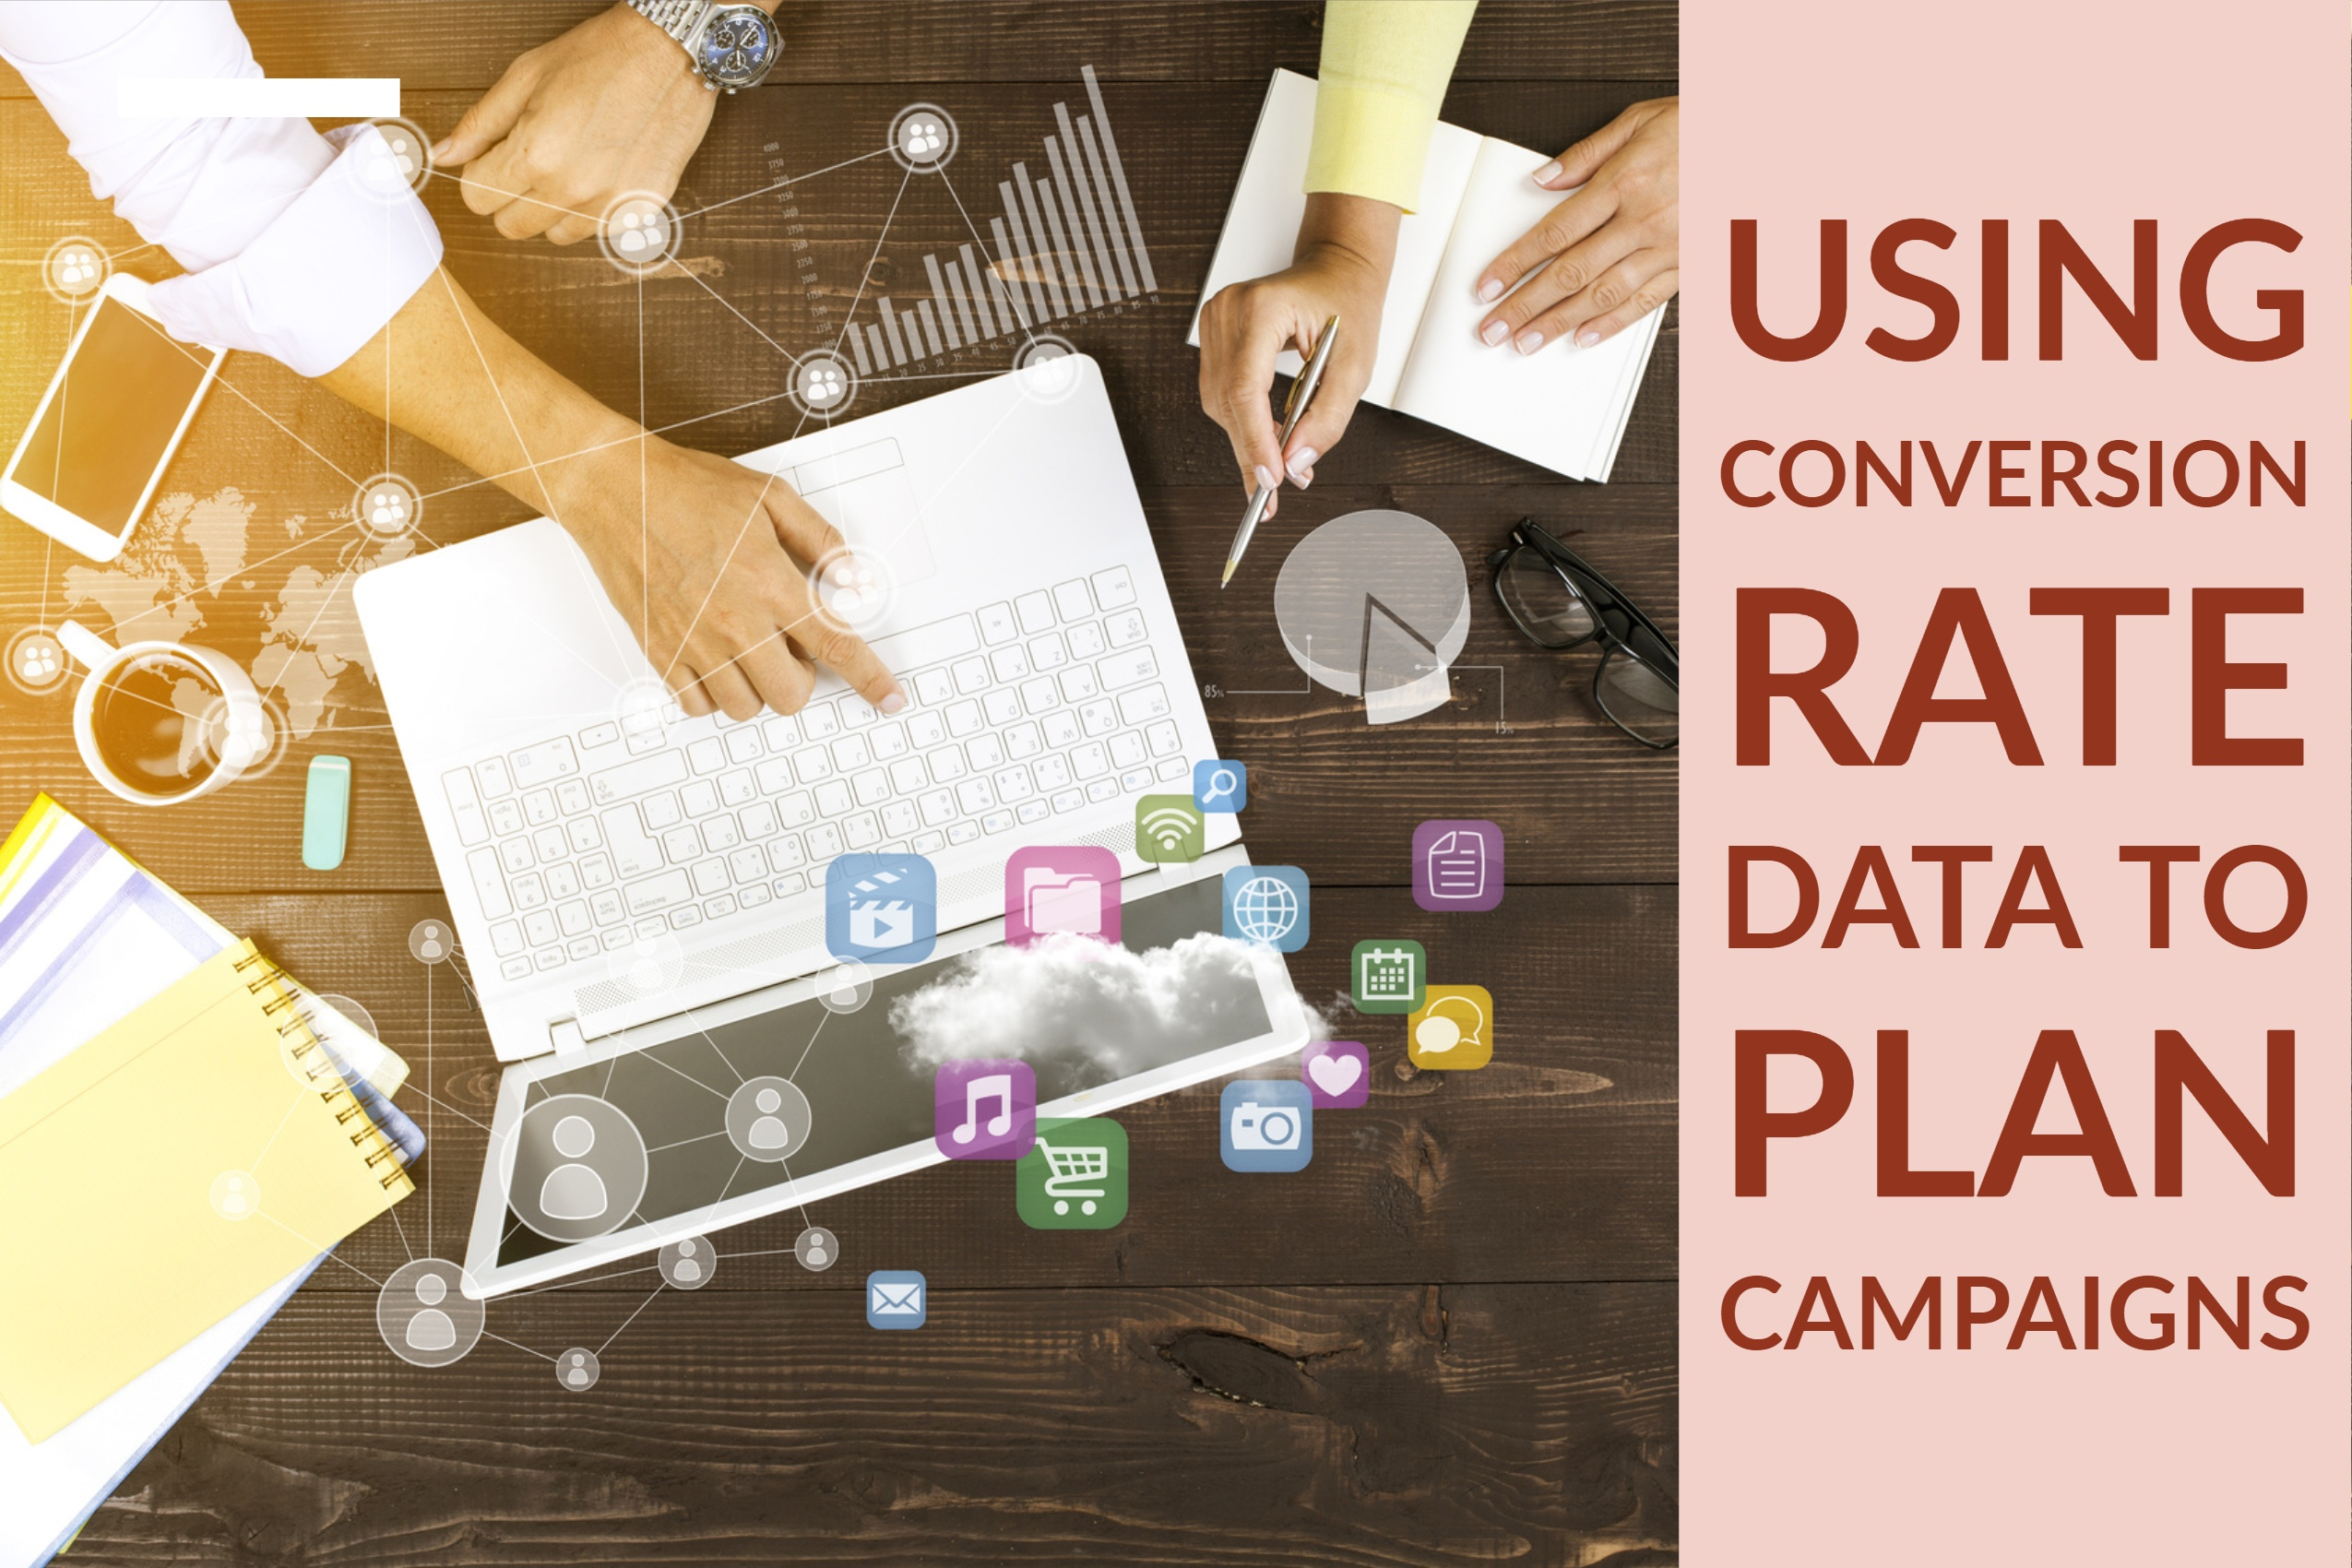 Using Conversion Rate Data to Plan Campaigns